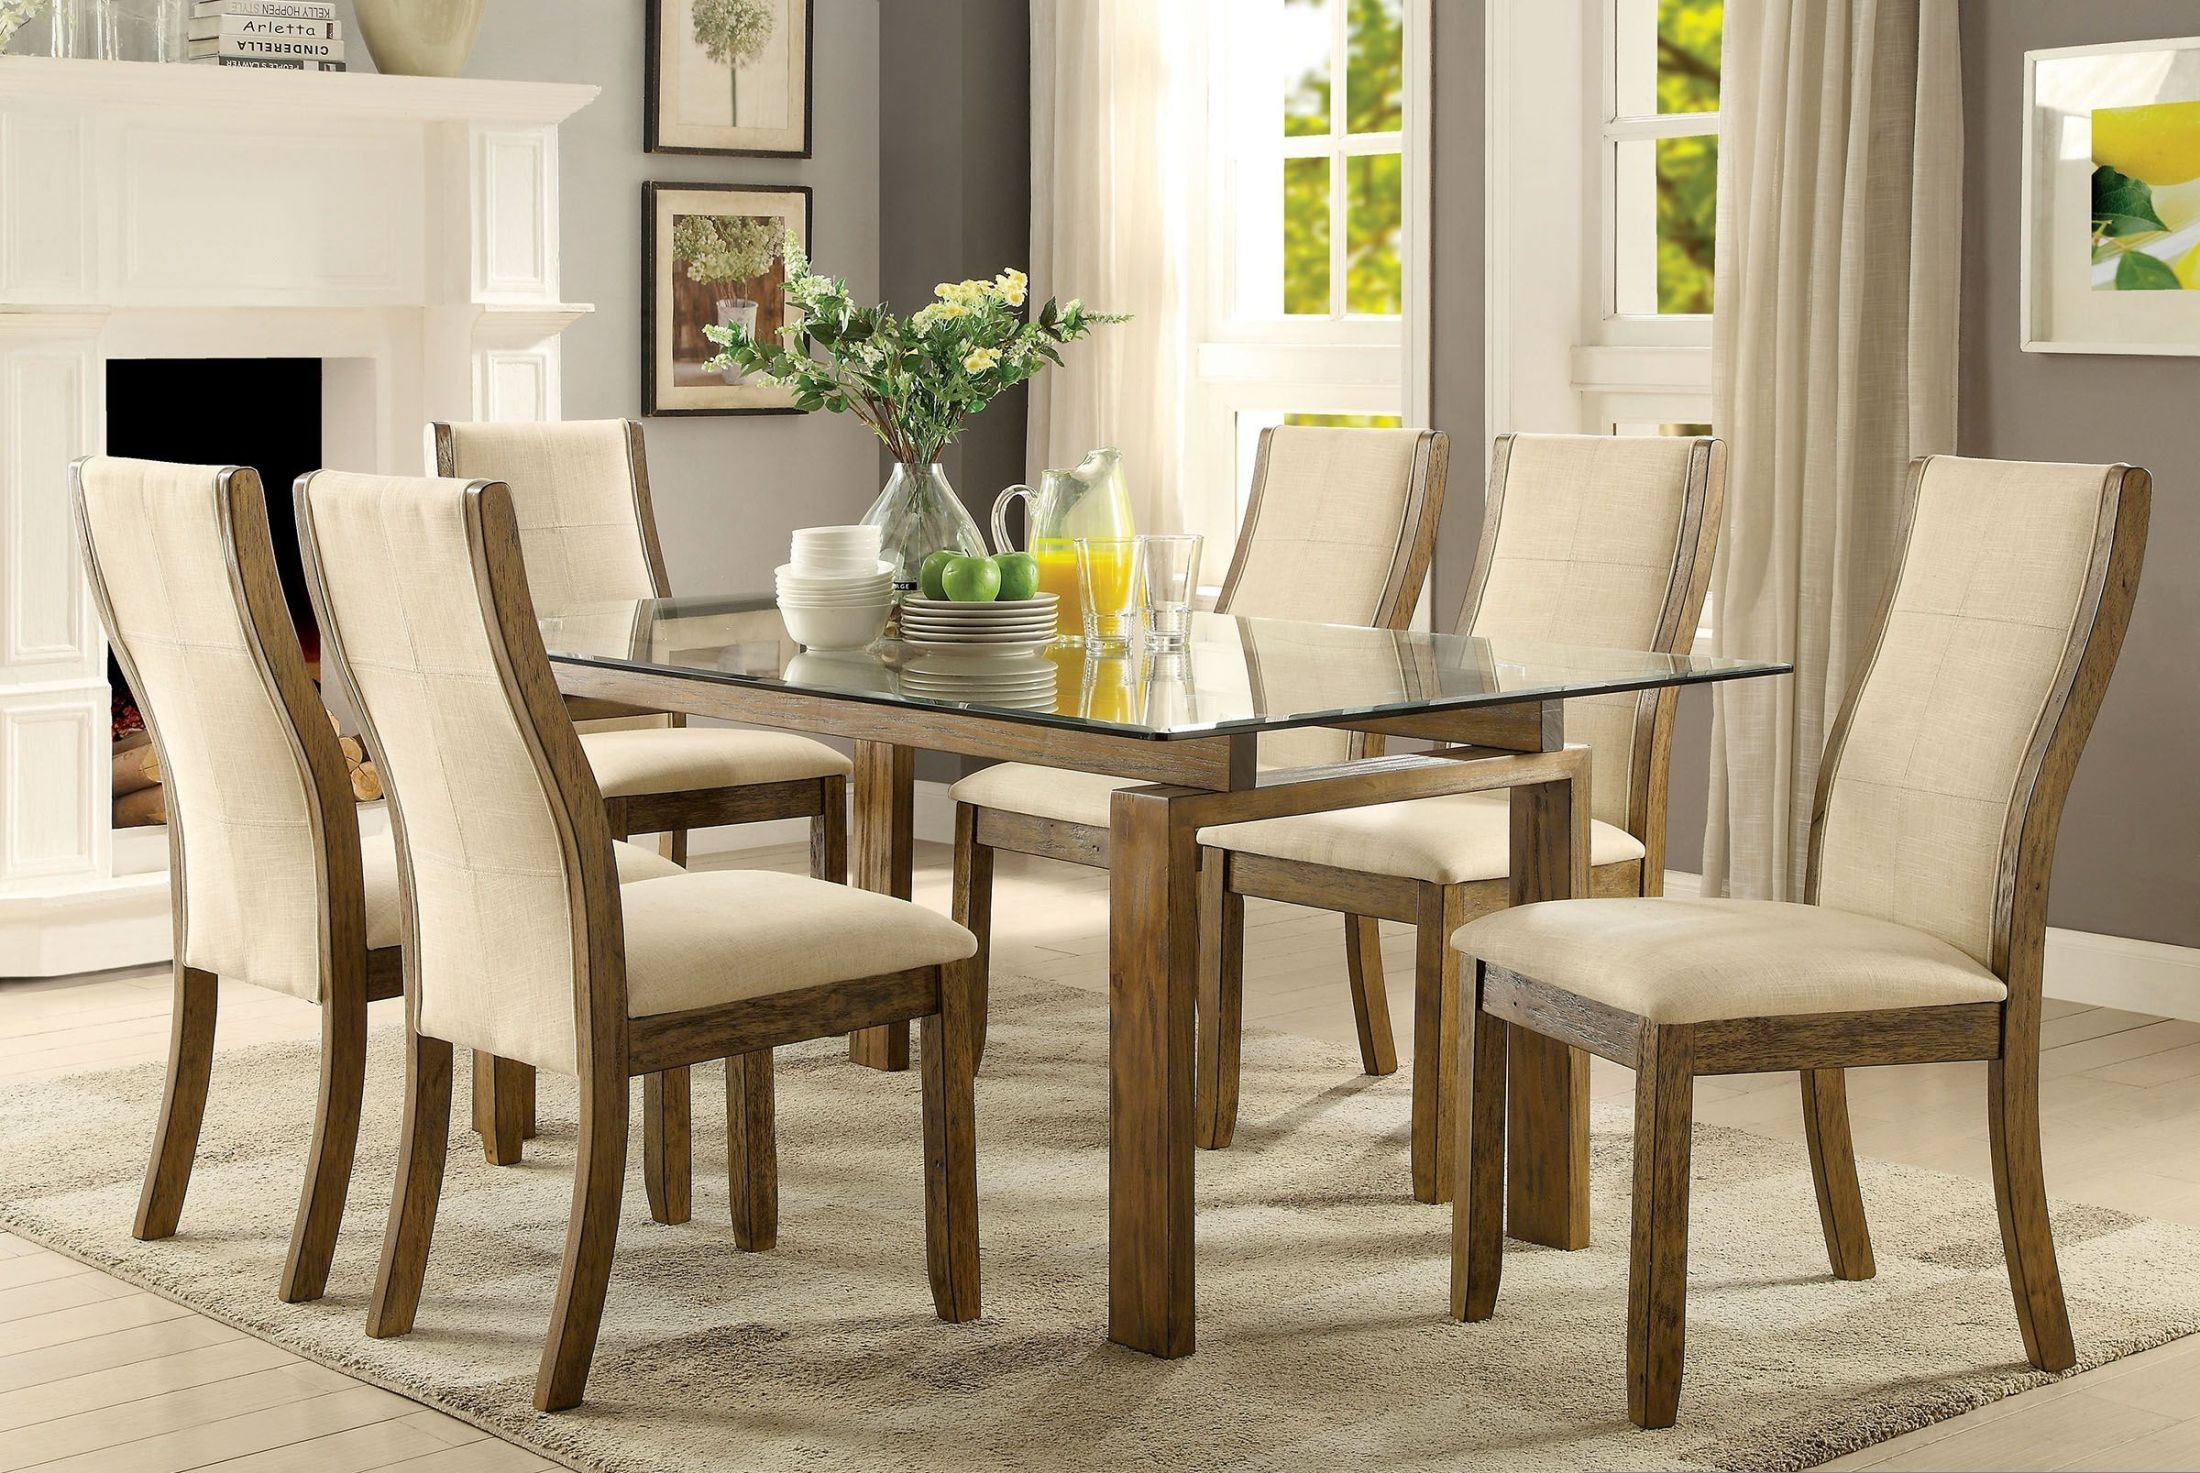 Onway oak rectangular glass top dining room set cm t